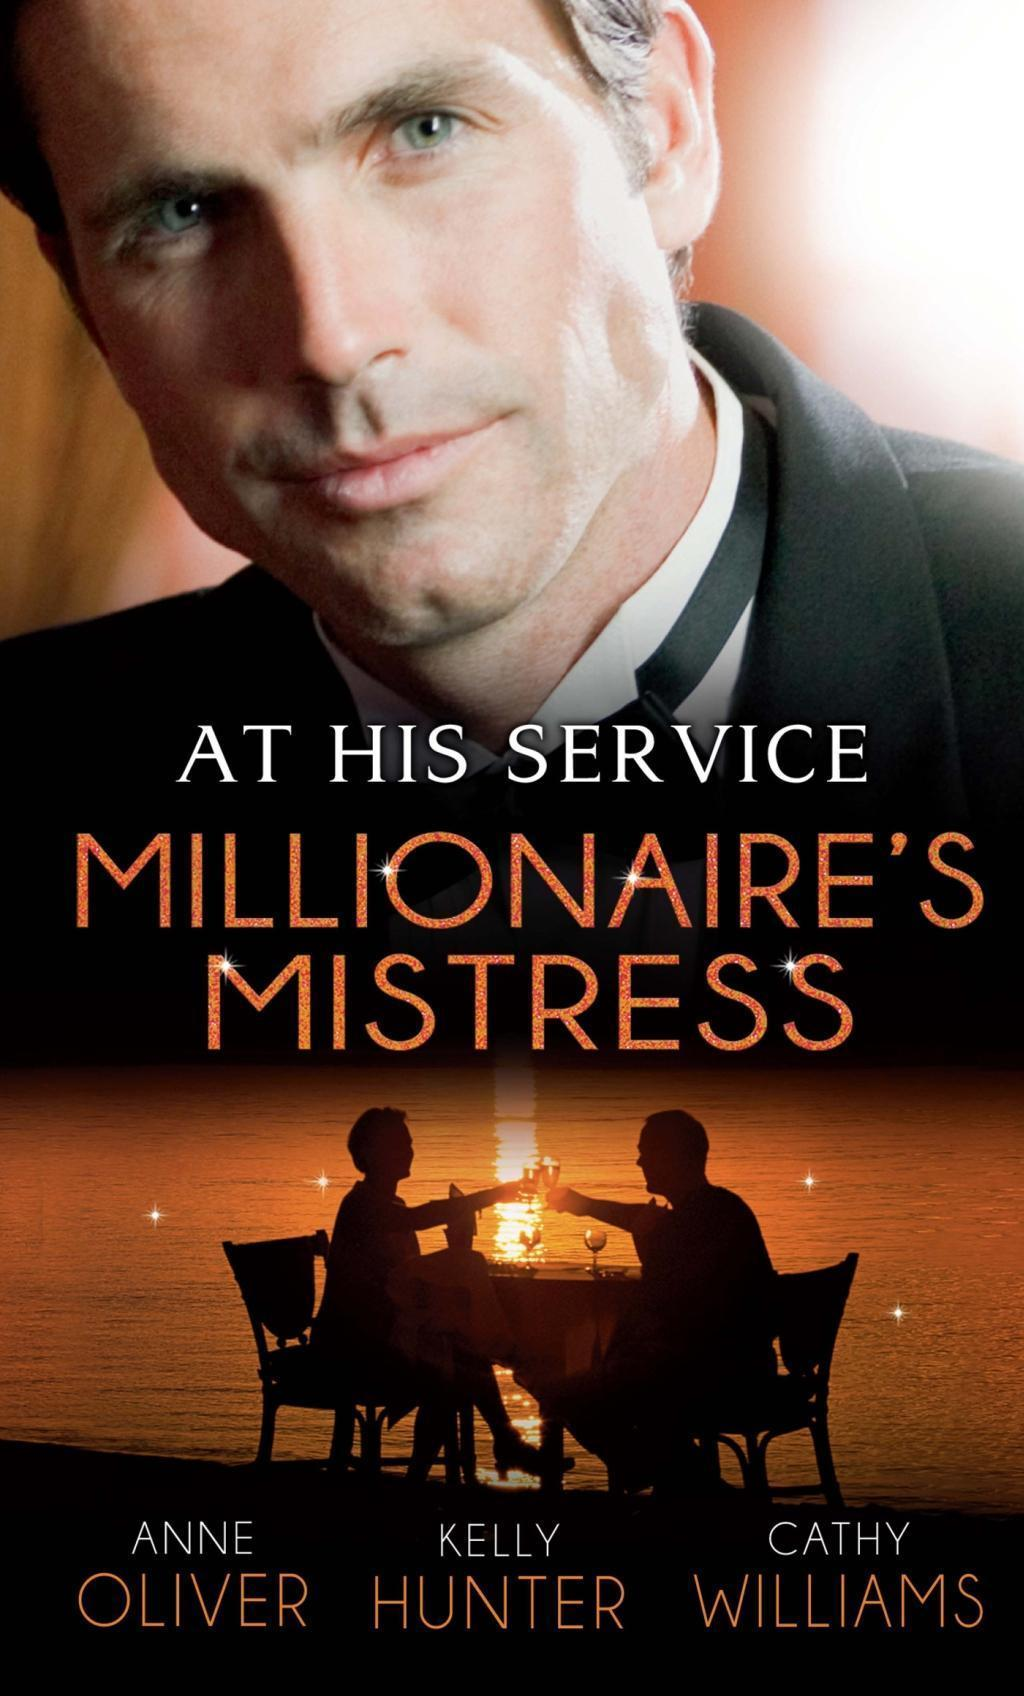 At His Service: Millionaire's Mistress: Memoirs of a Millionaire's Mistress / Playboy Boss, Live-In Mistress / The Italian Boss's Secretary Mistress (Mills & Boon M&B)